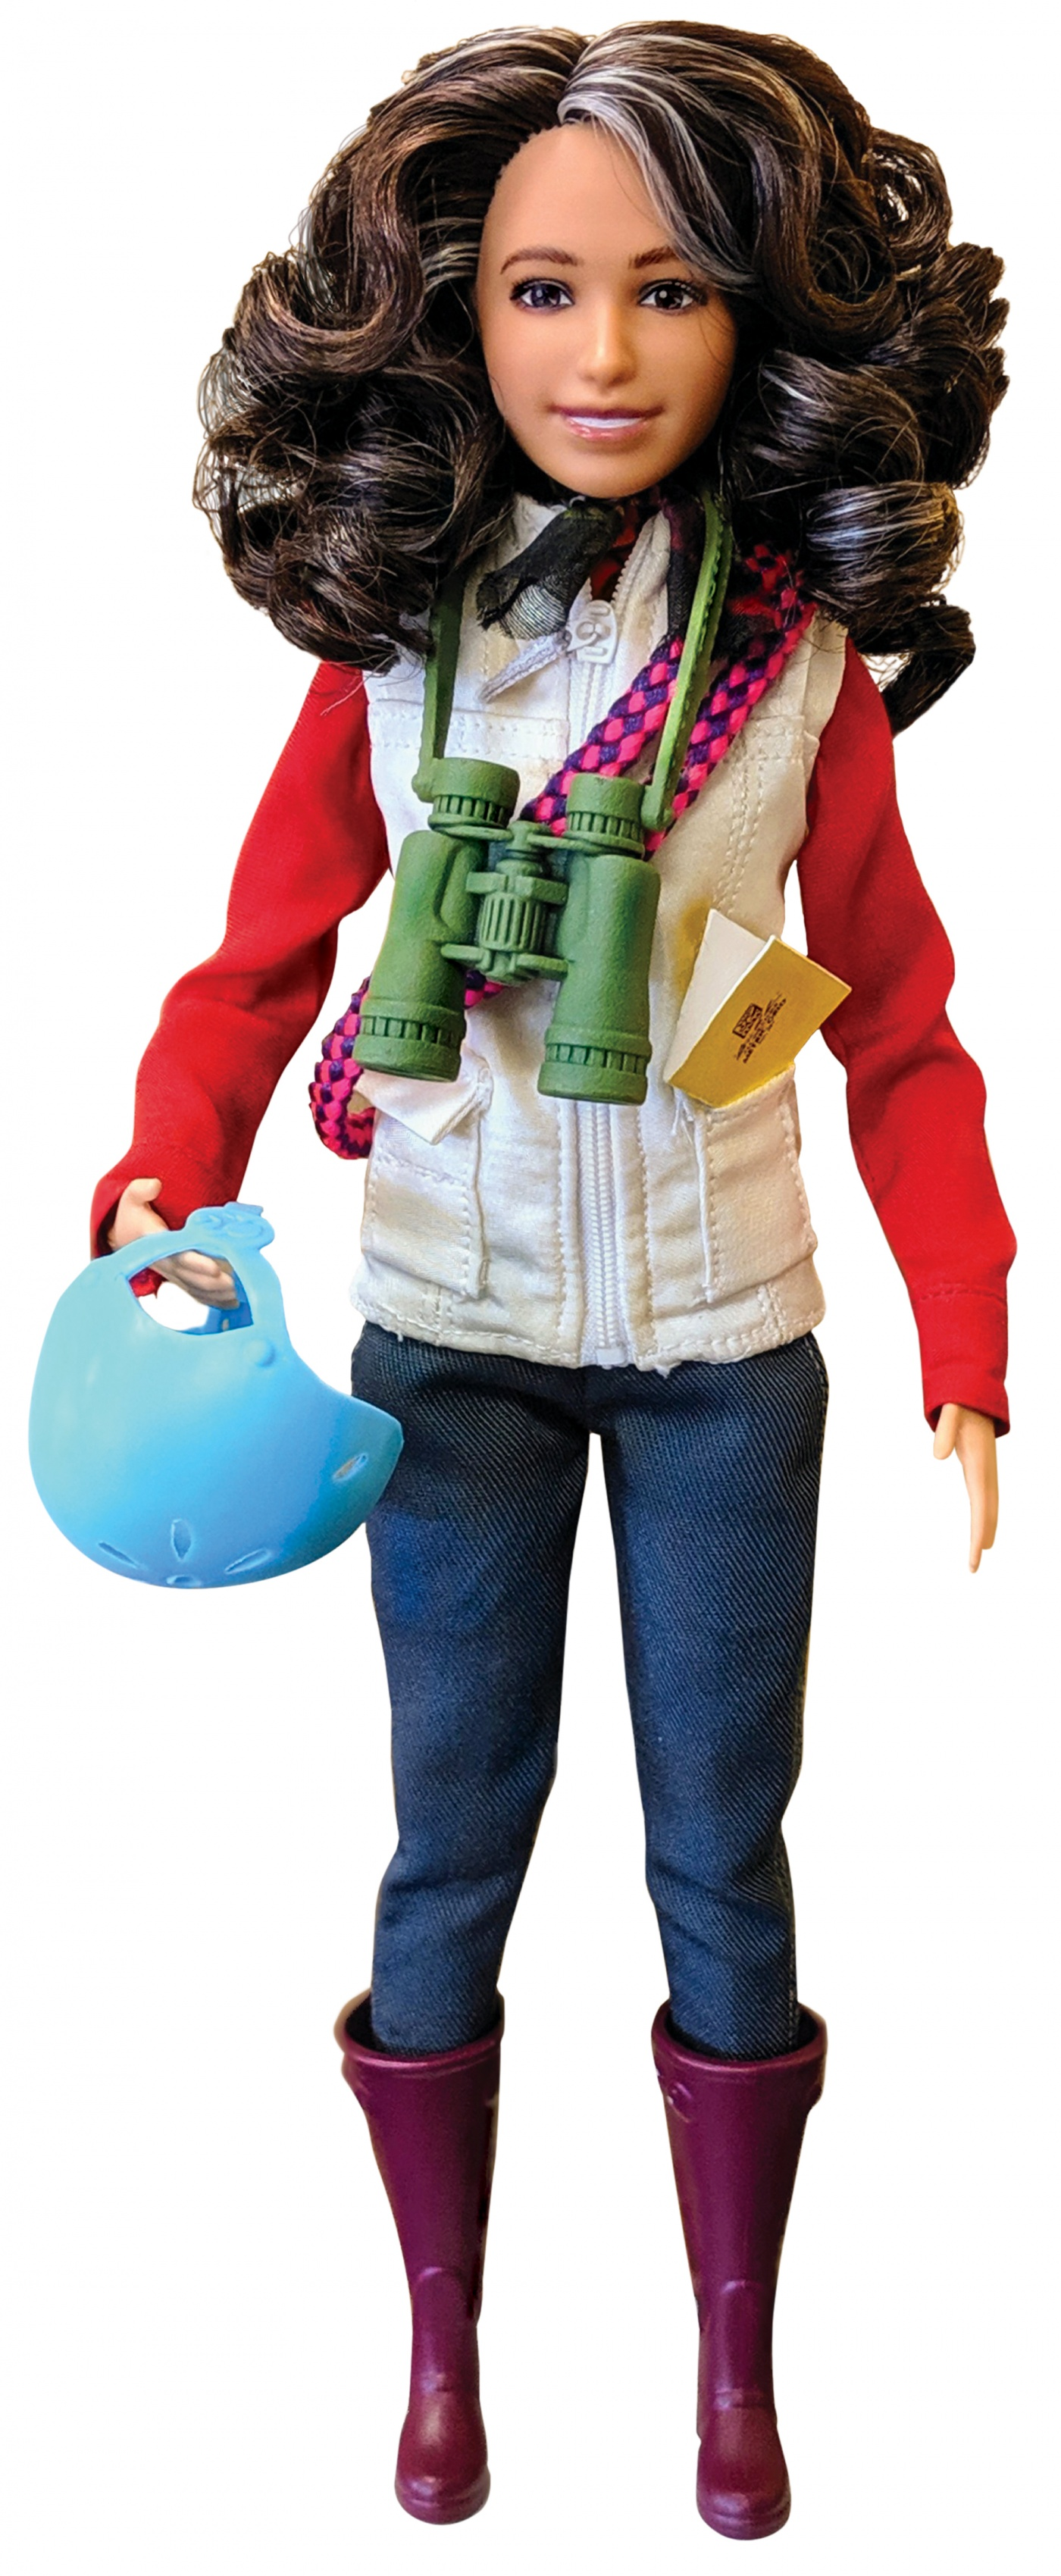 Image of Explorer Barbie